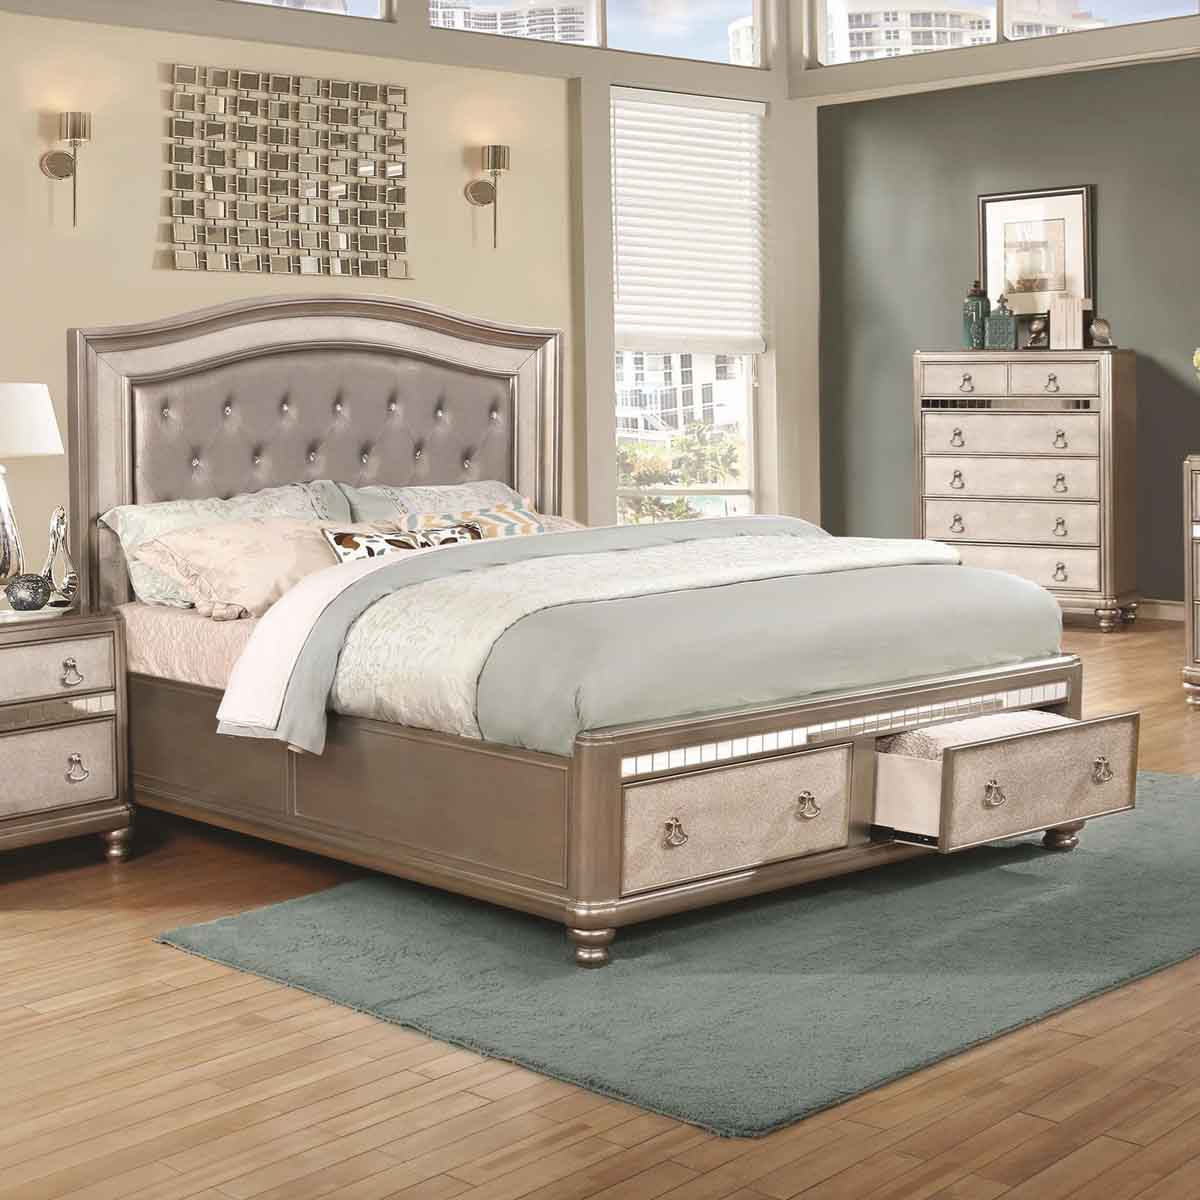 Bling Game Upholstered Bed With Storage Footboard